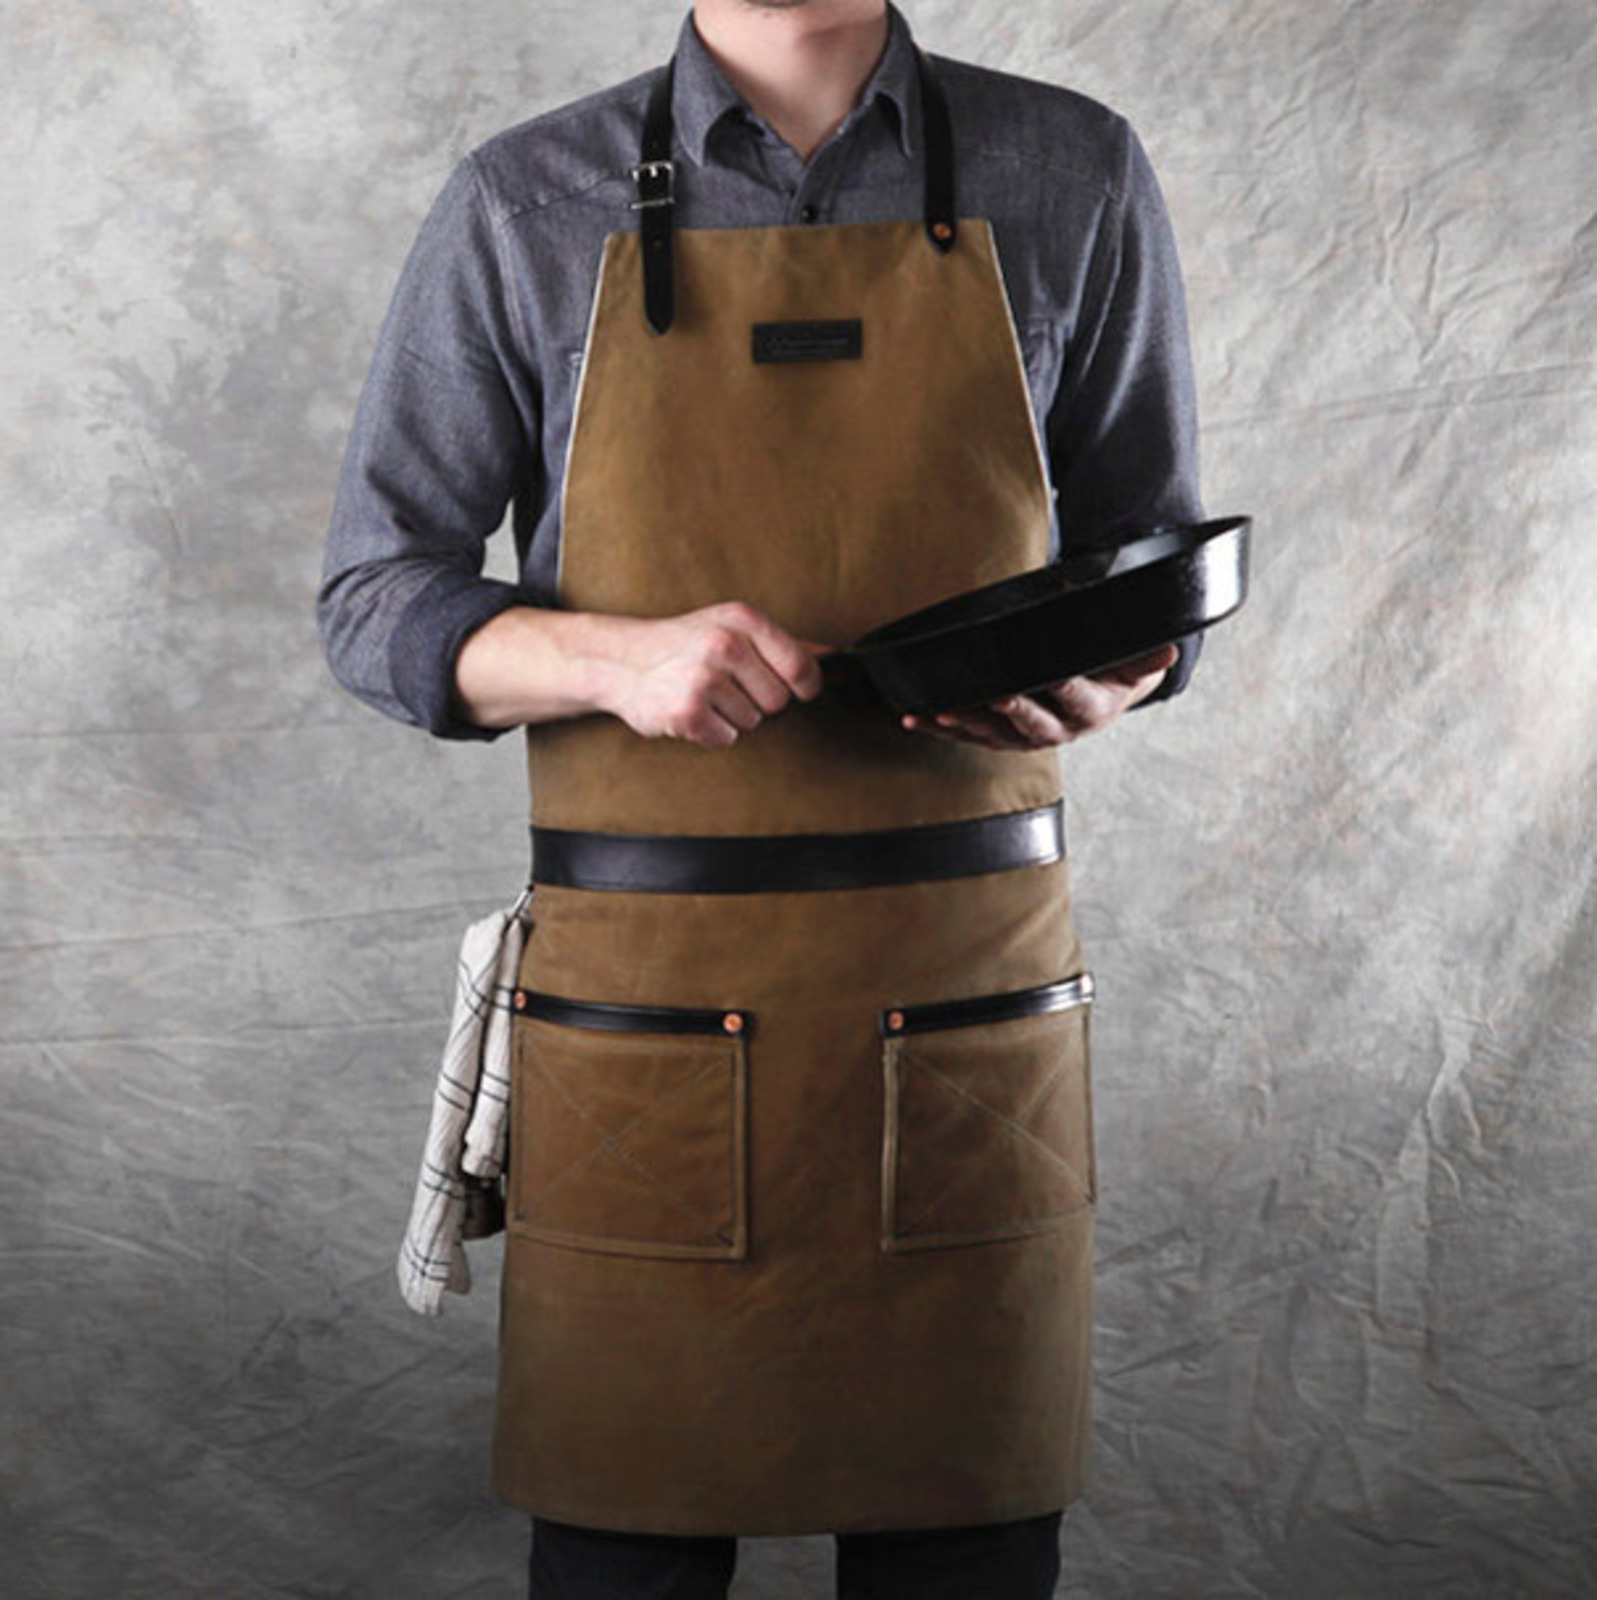 Chef+Aprons+for+Boys Hardmill Rugged Apron - Cool Hunting